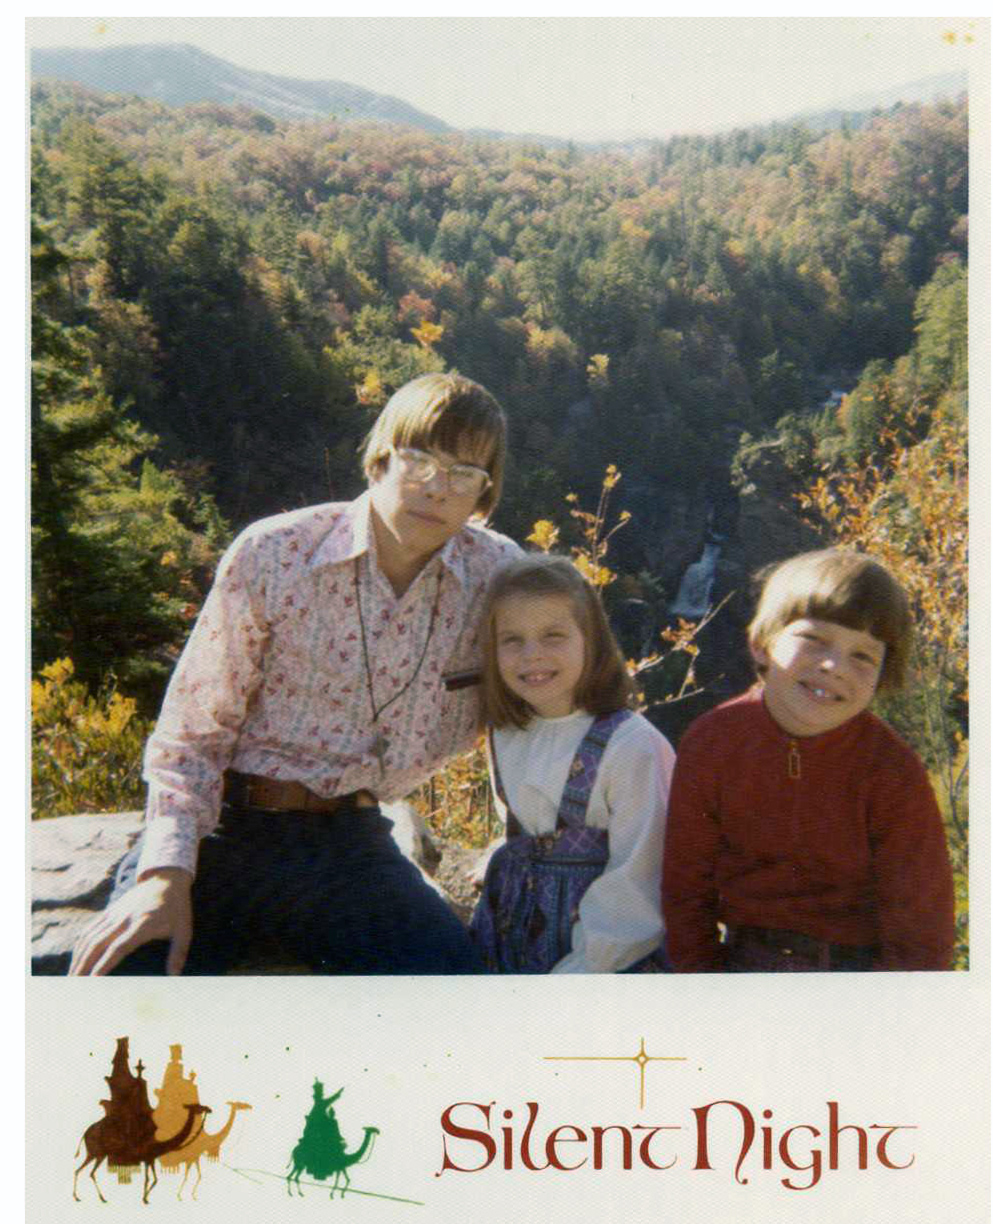 betty orr daniel wessell  a christmas card from the wessell family around 1973